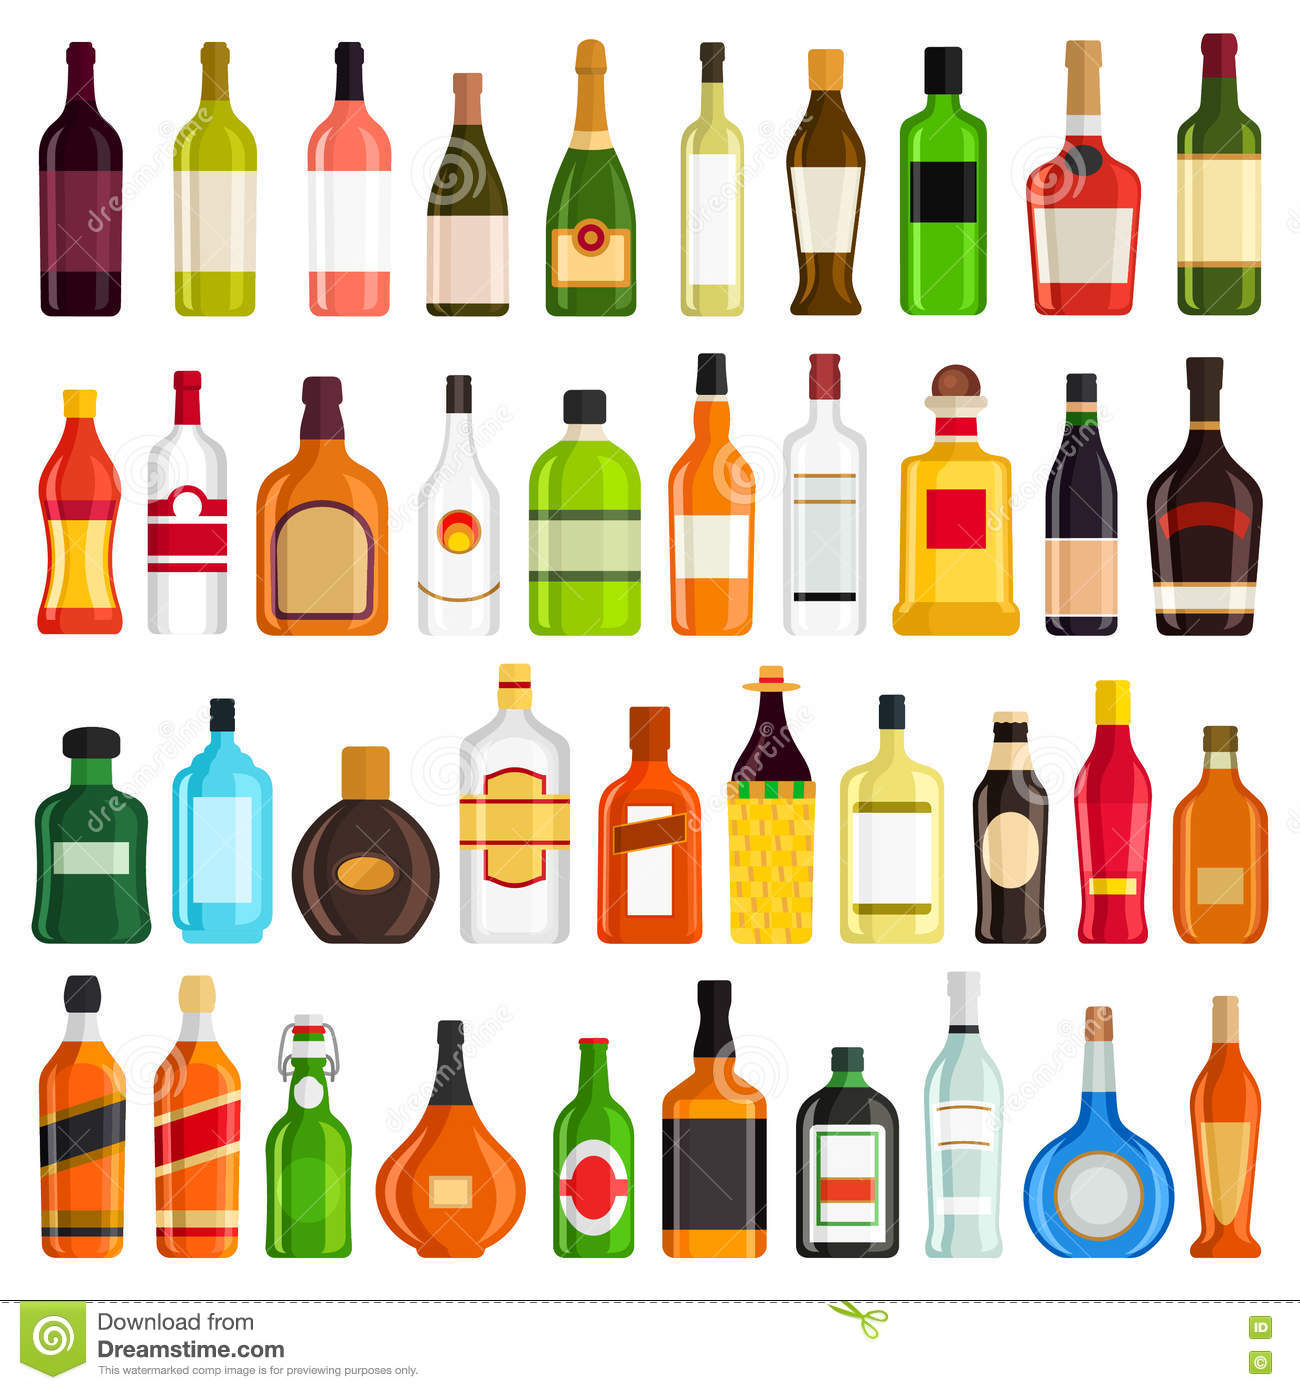 Bottles Of Alcoholic Drinks Royalty-Free Stock Image